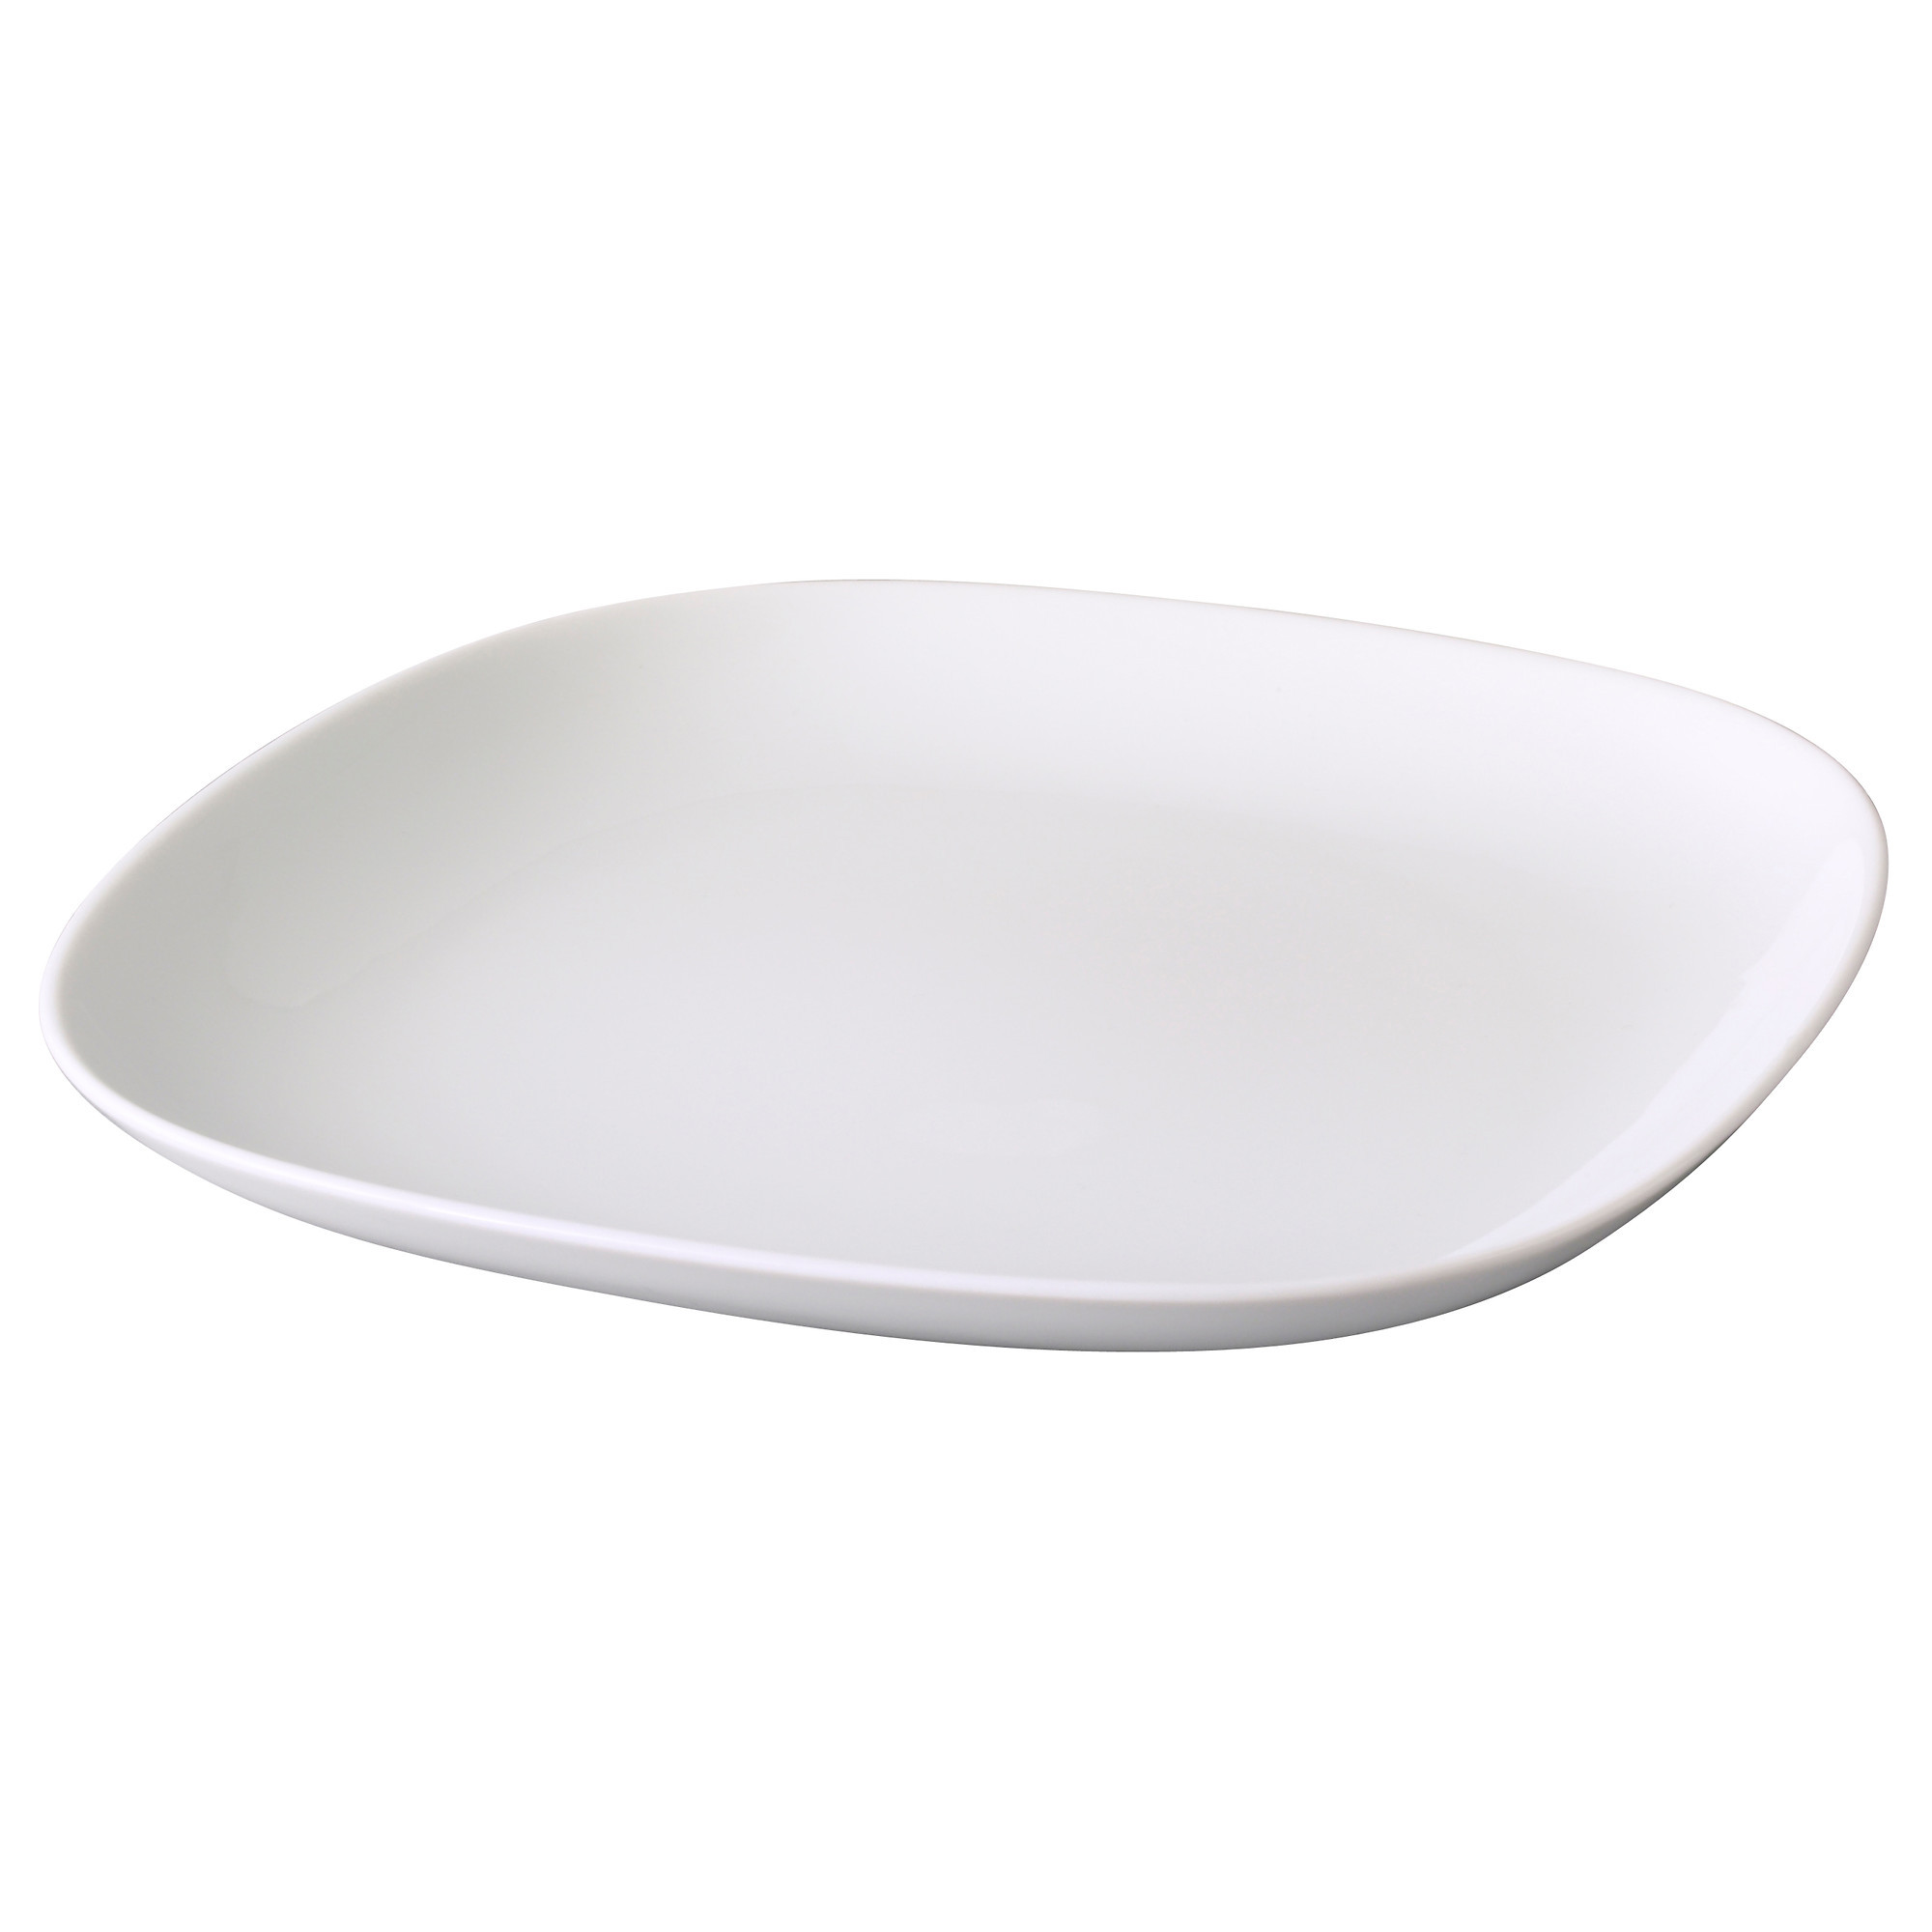 Ikea Dinner Plates  57 Ikea Plate Sets Dinner Plates Plate Sets Shop With